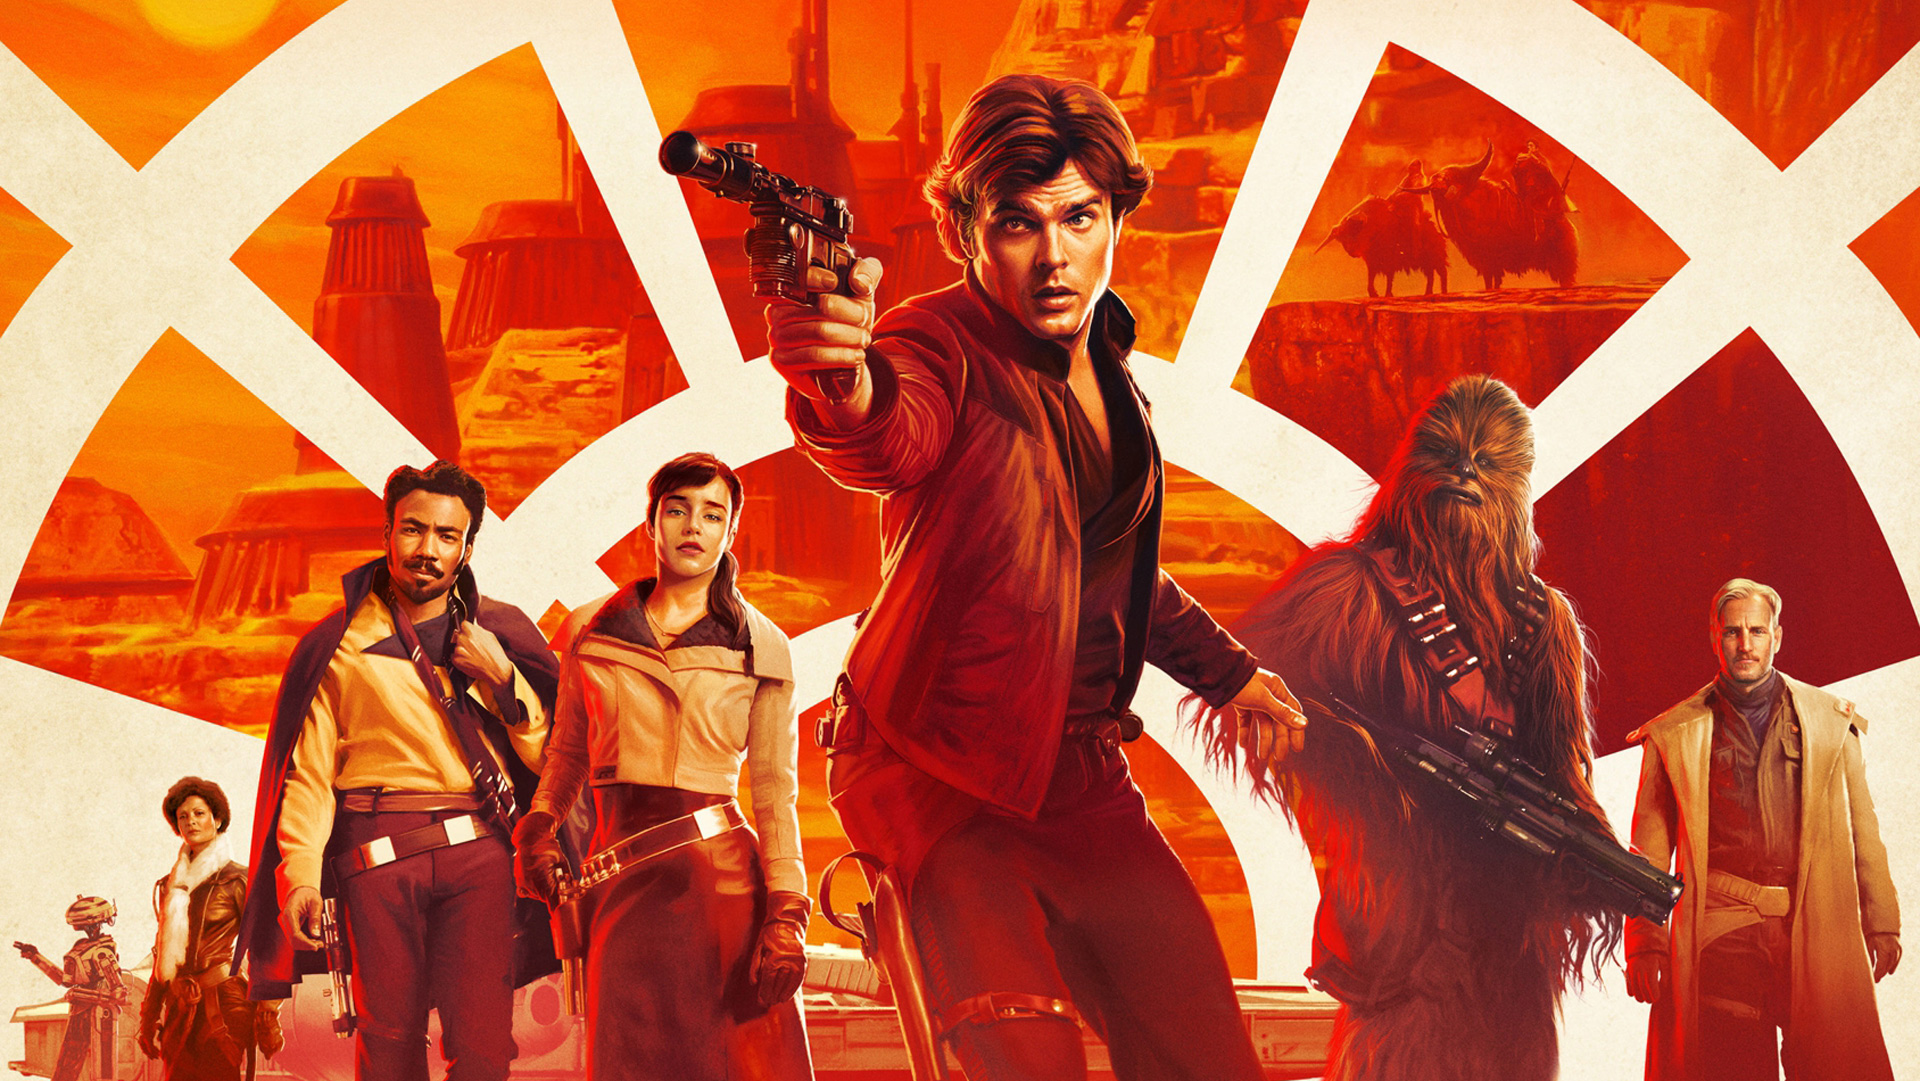 Solo A Star Wars Story Poster Hd Movies 4k Wallpapers Images Backgrounds Photos And Pictures